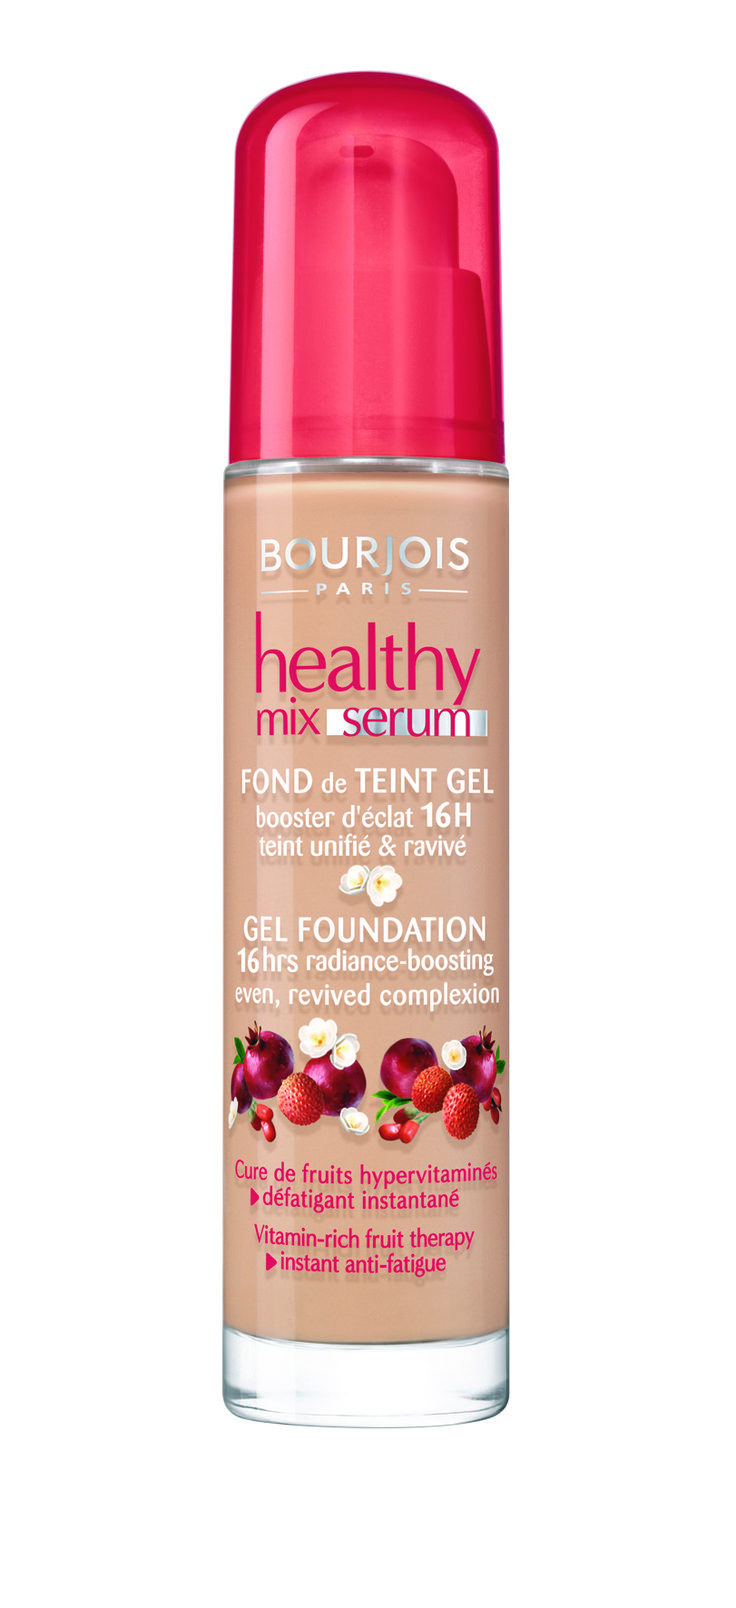 Healthy Mix Serum foundation #BourjoisFrenchChic